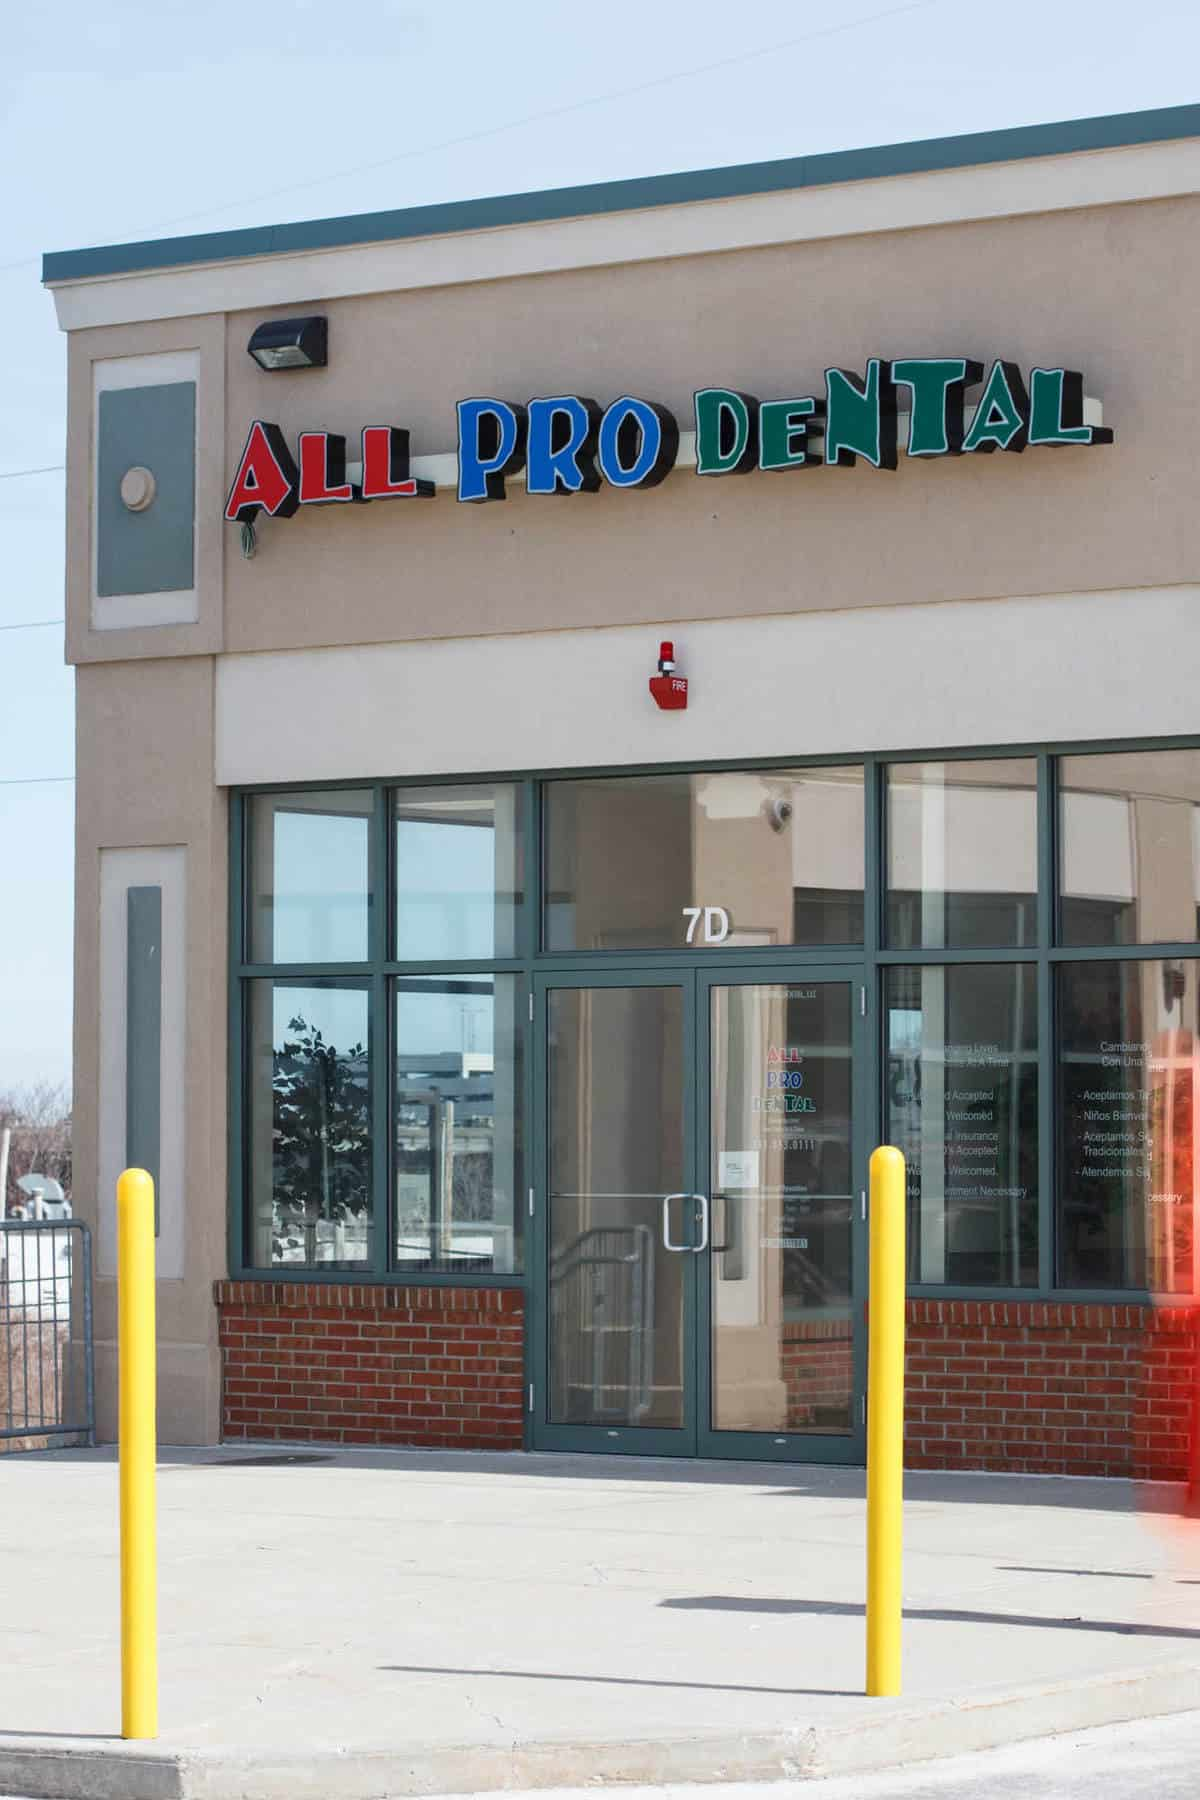 exterior of All Pro Dental office